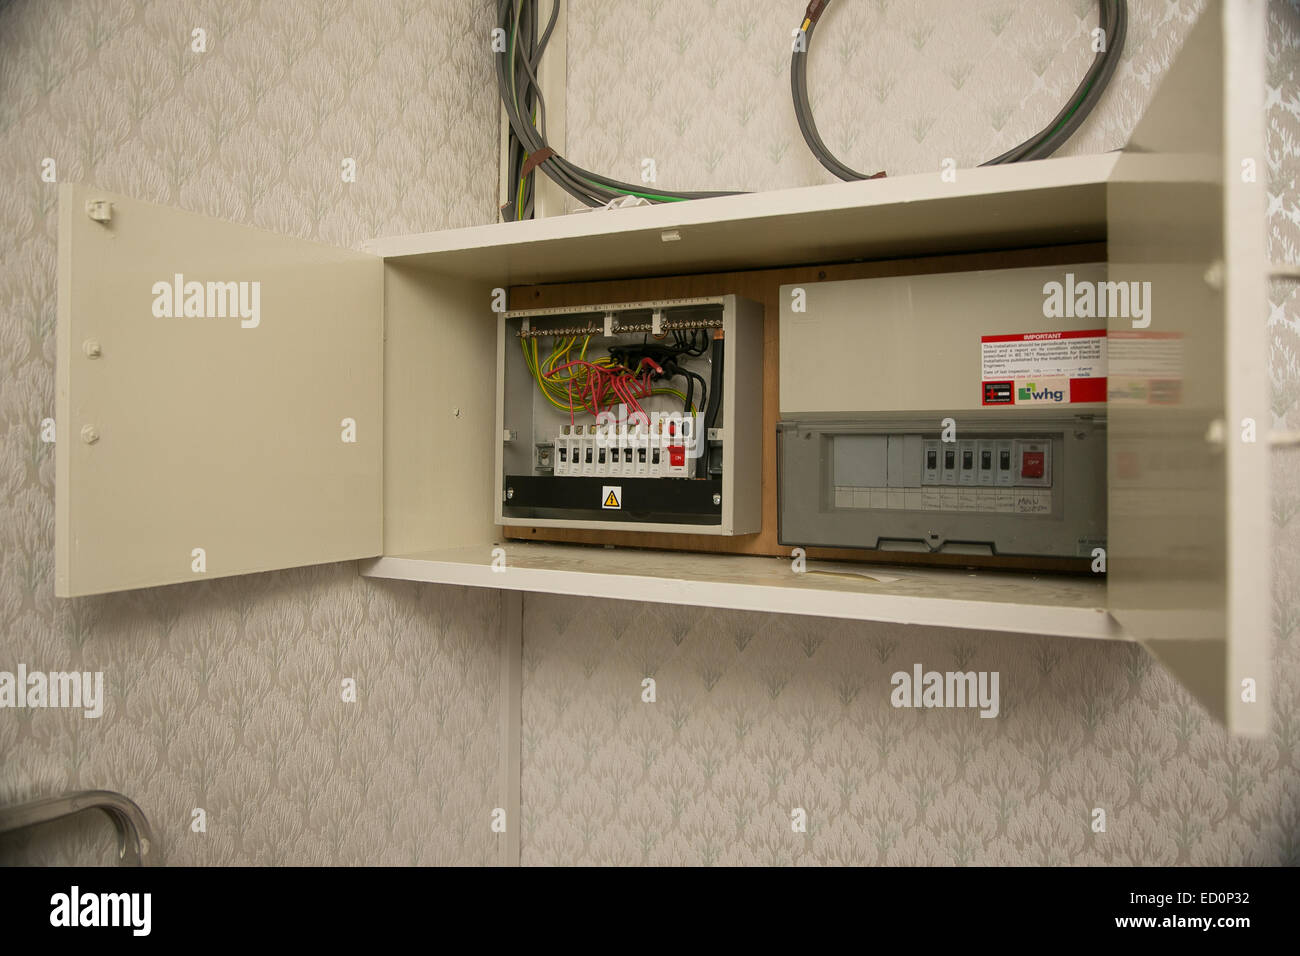 hight resolution of fuse board being rewired stock image